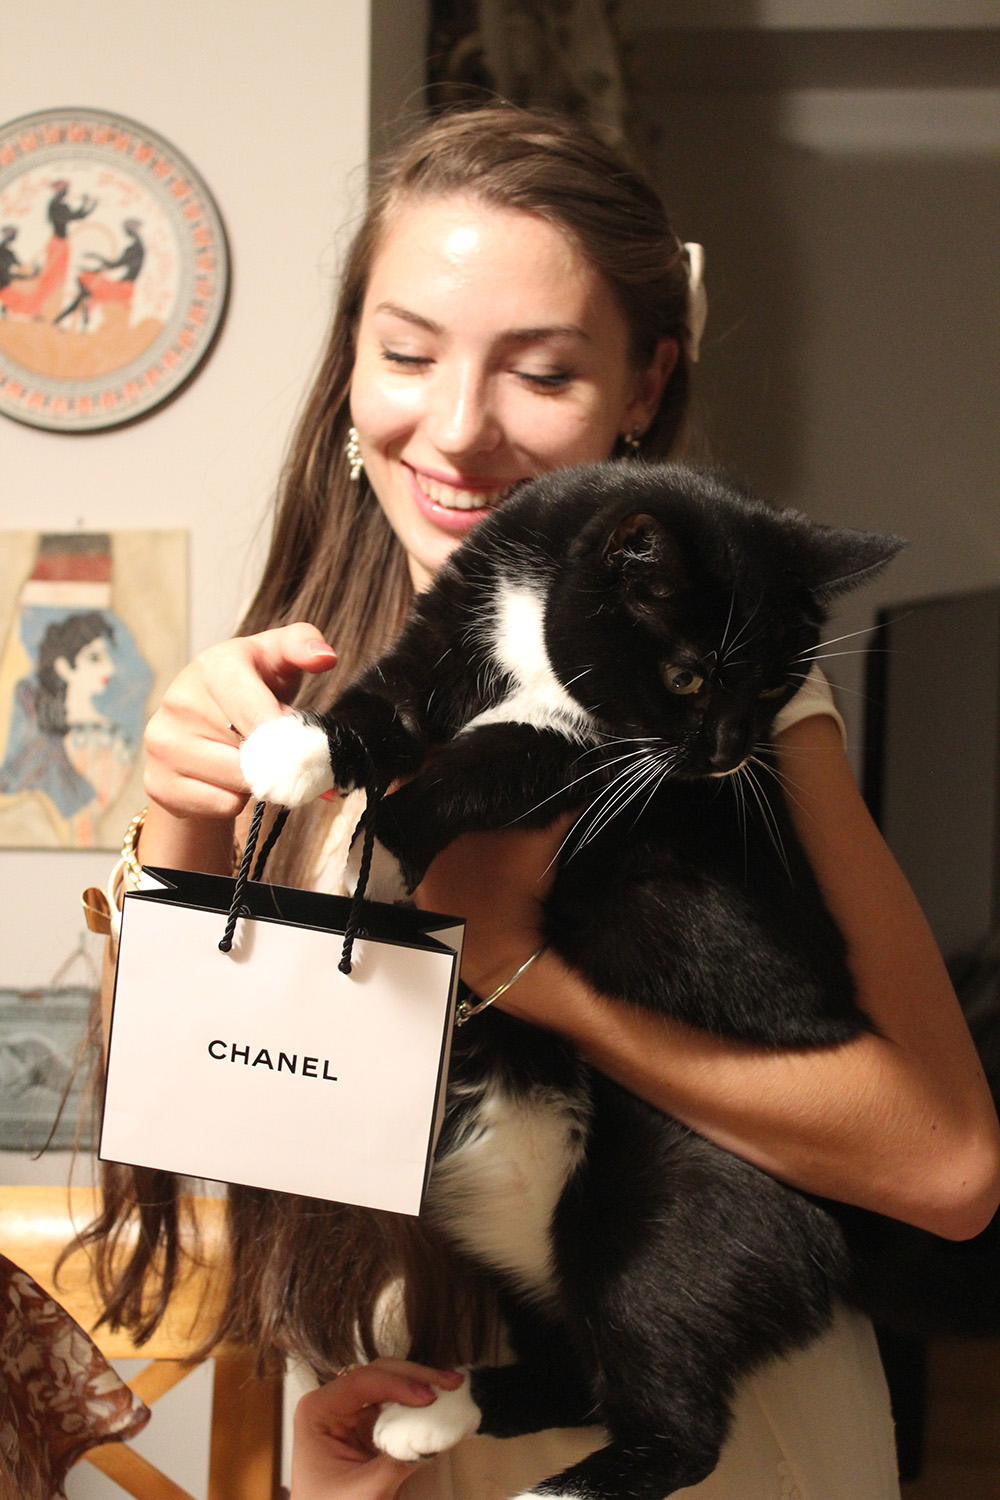 coco the cat and chanel